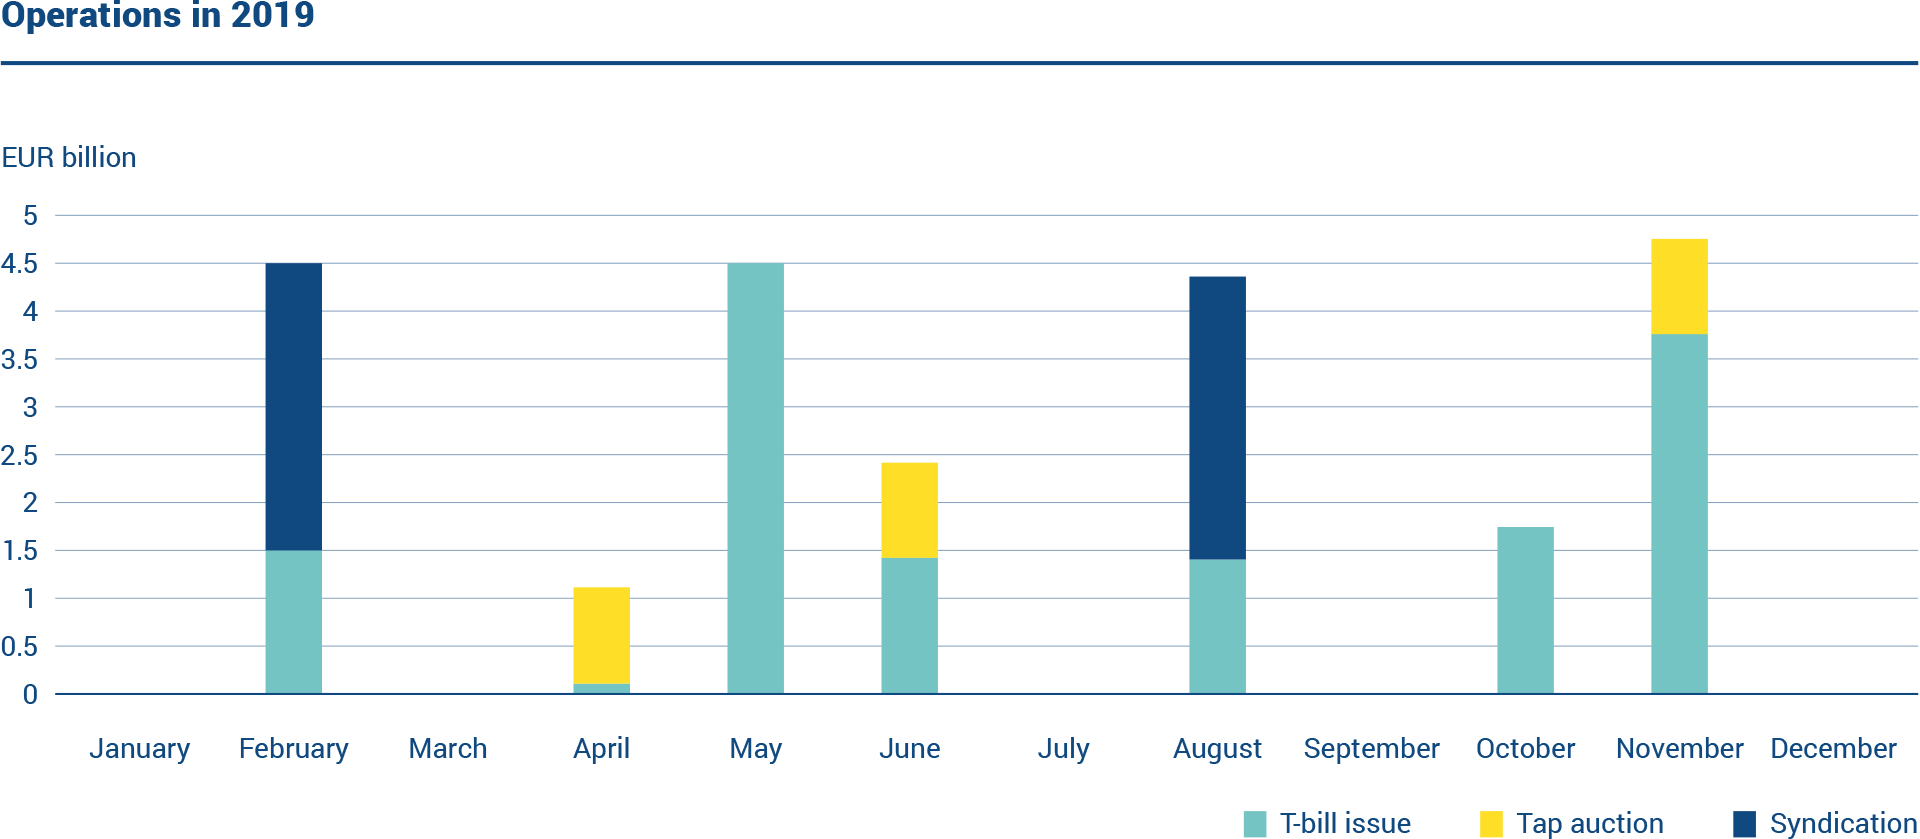 The graph shows the operations conducted by the State Treasury in 2019. Finland issued two new euro-denominated benchmark bonds and arranged three tap auctions. The short-term funding was carried out by issuing Treasury bills.